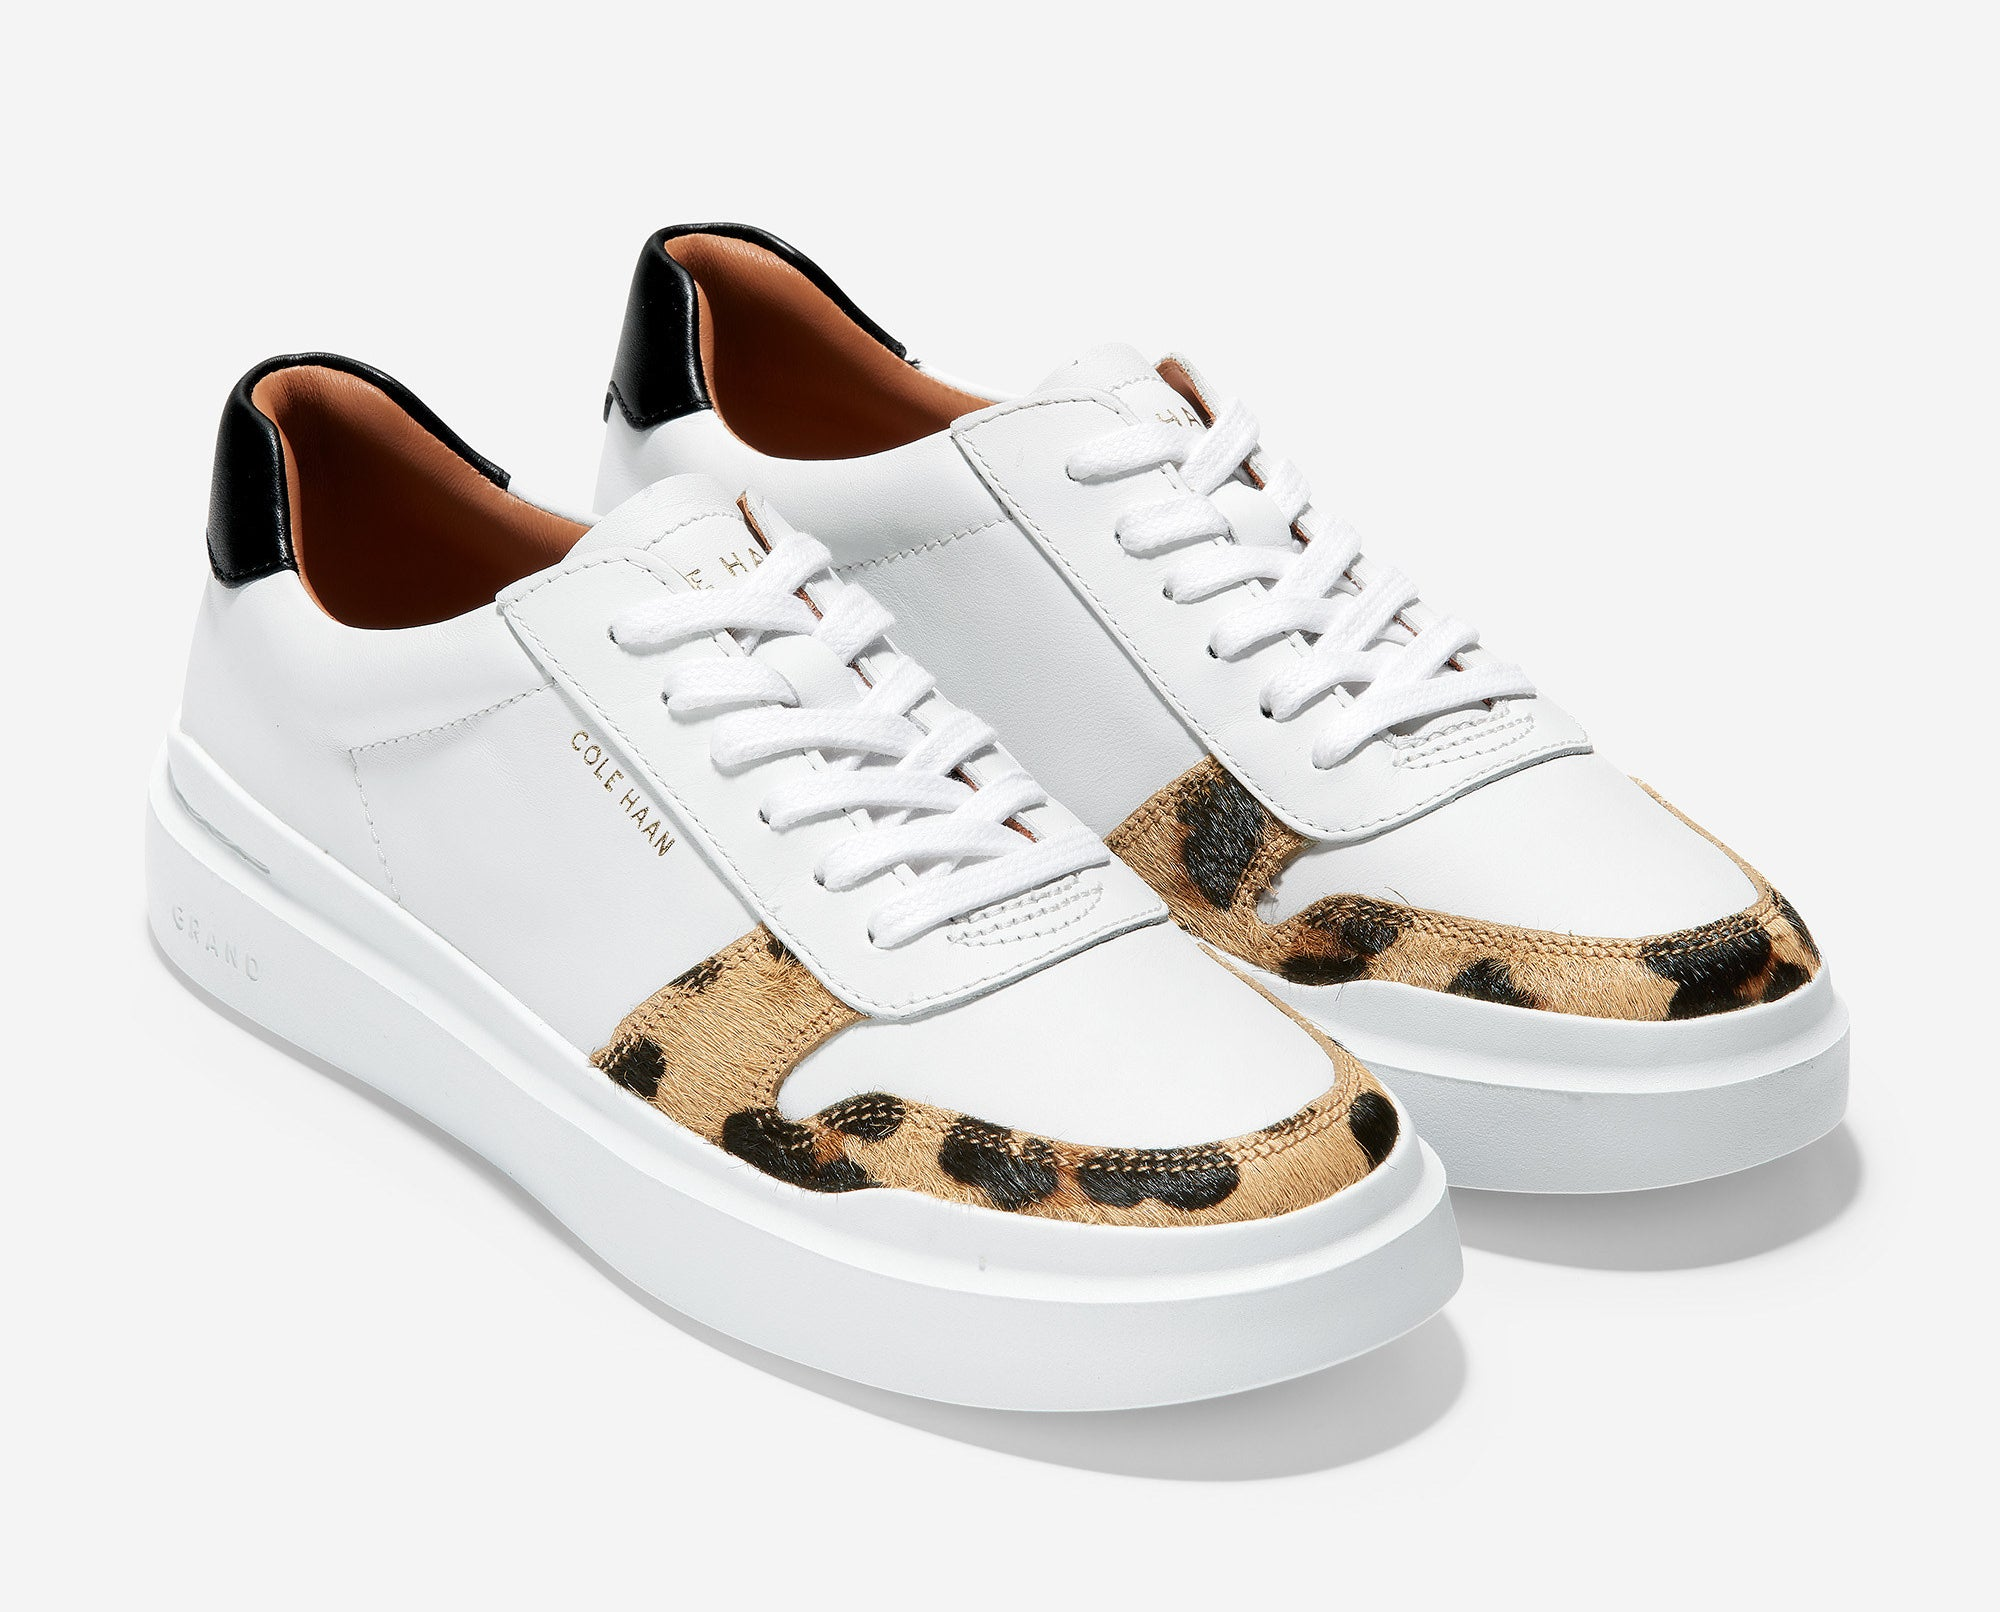 the white sneakers with strip of leopard print around the toe and black by the heel